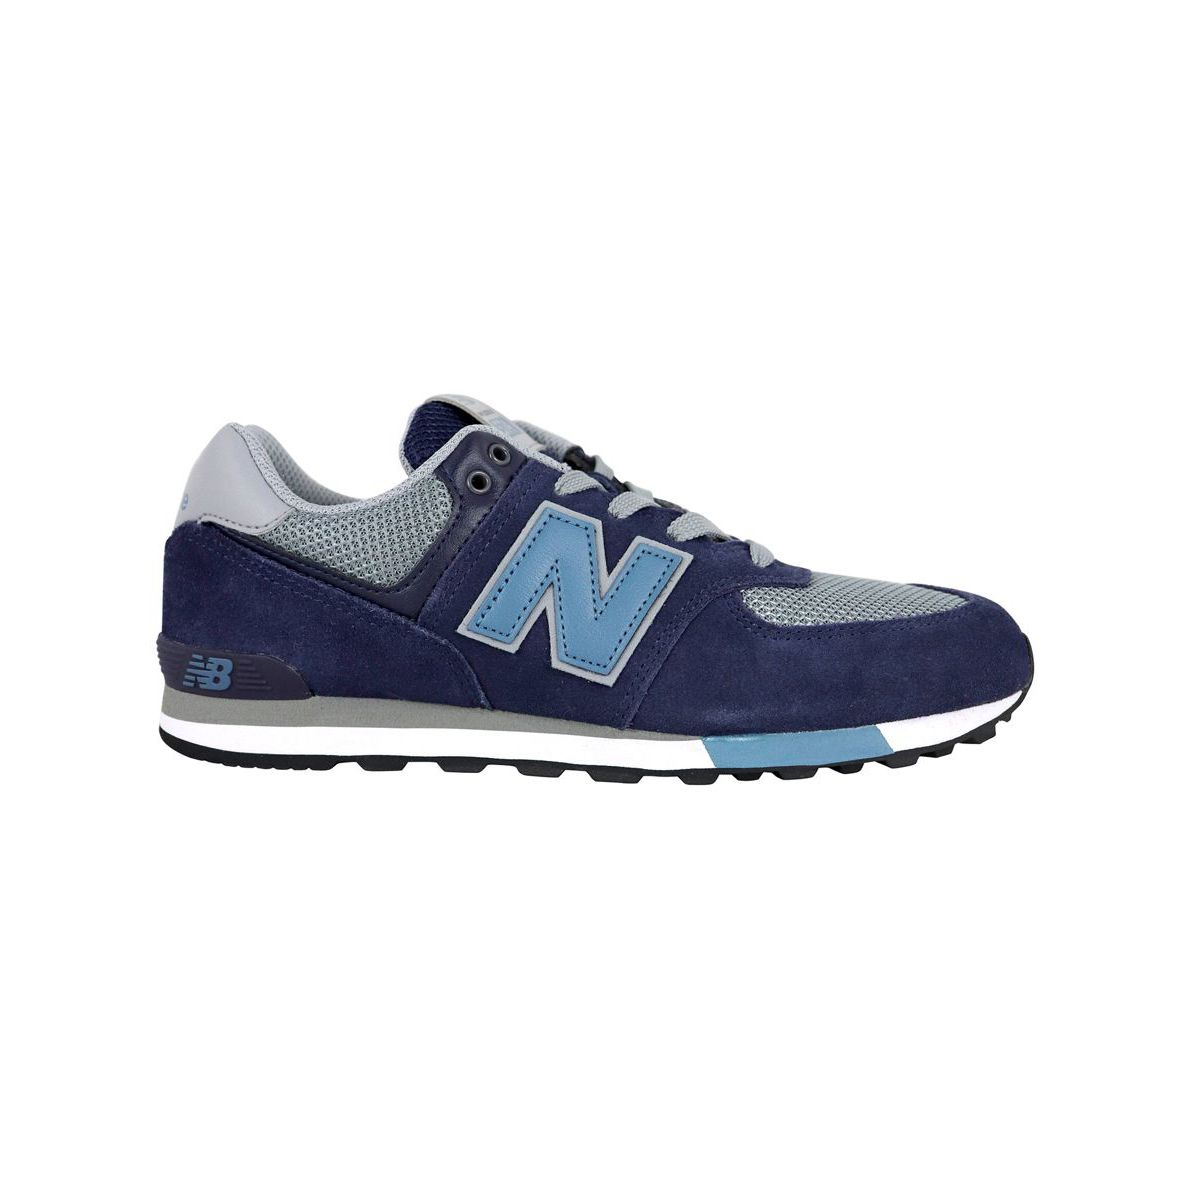 Sneakers GC574FND Blue / gray New Balance